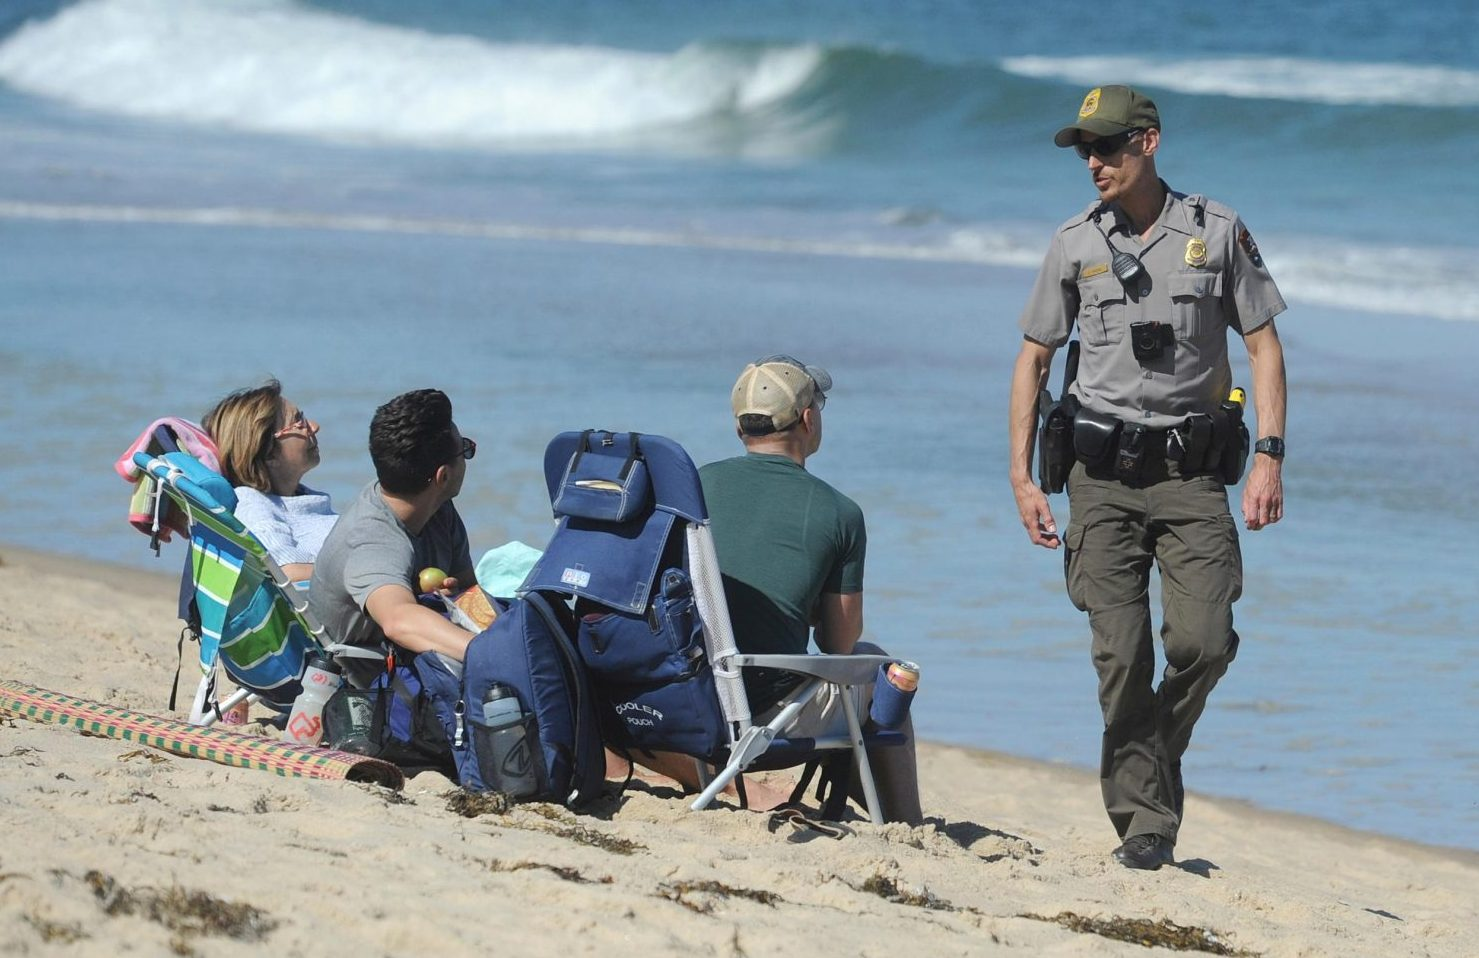 After Fatal Shark Attack Some Complain Of Slow Response